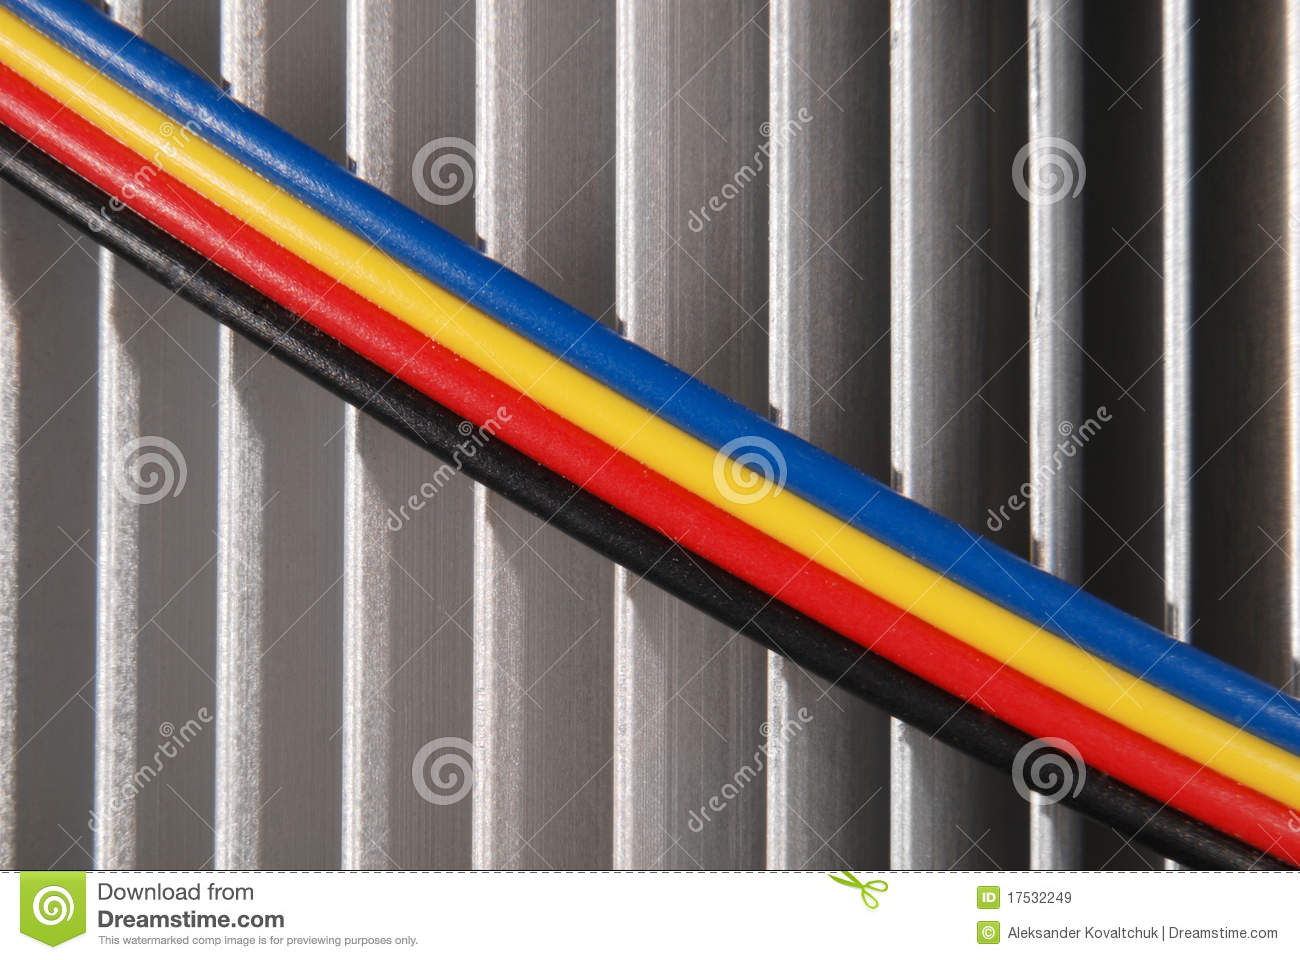 hight resolution of wires dark blue red yellow and black